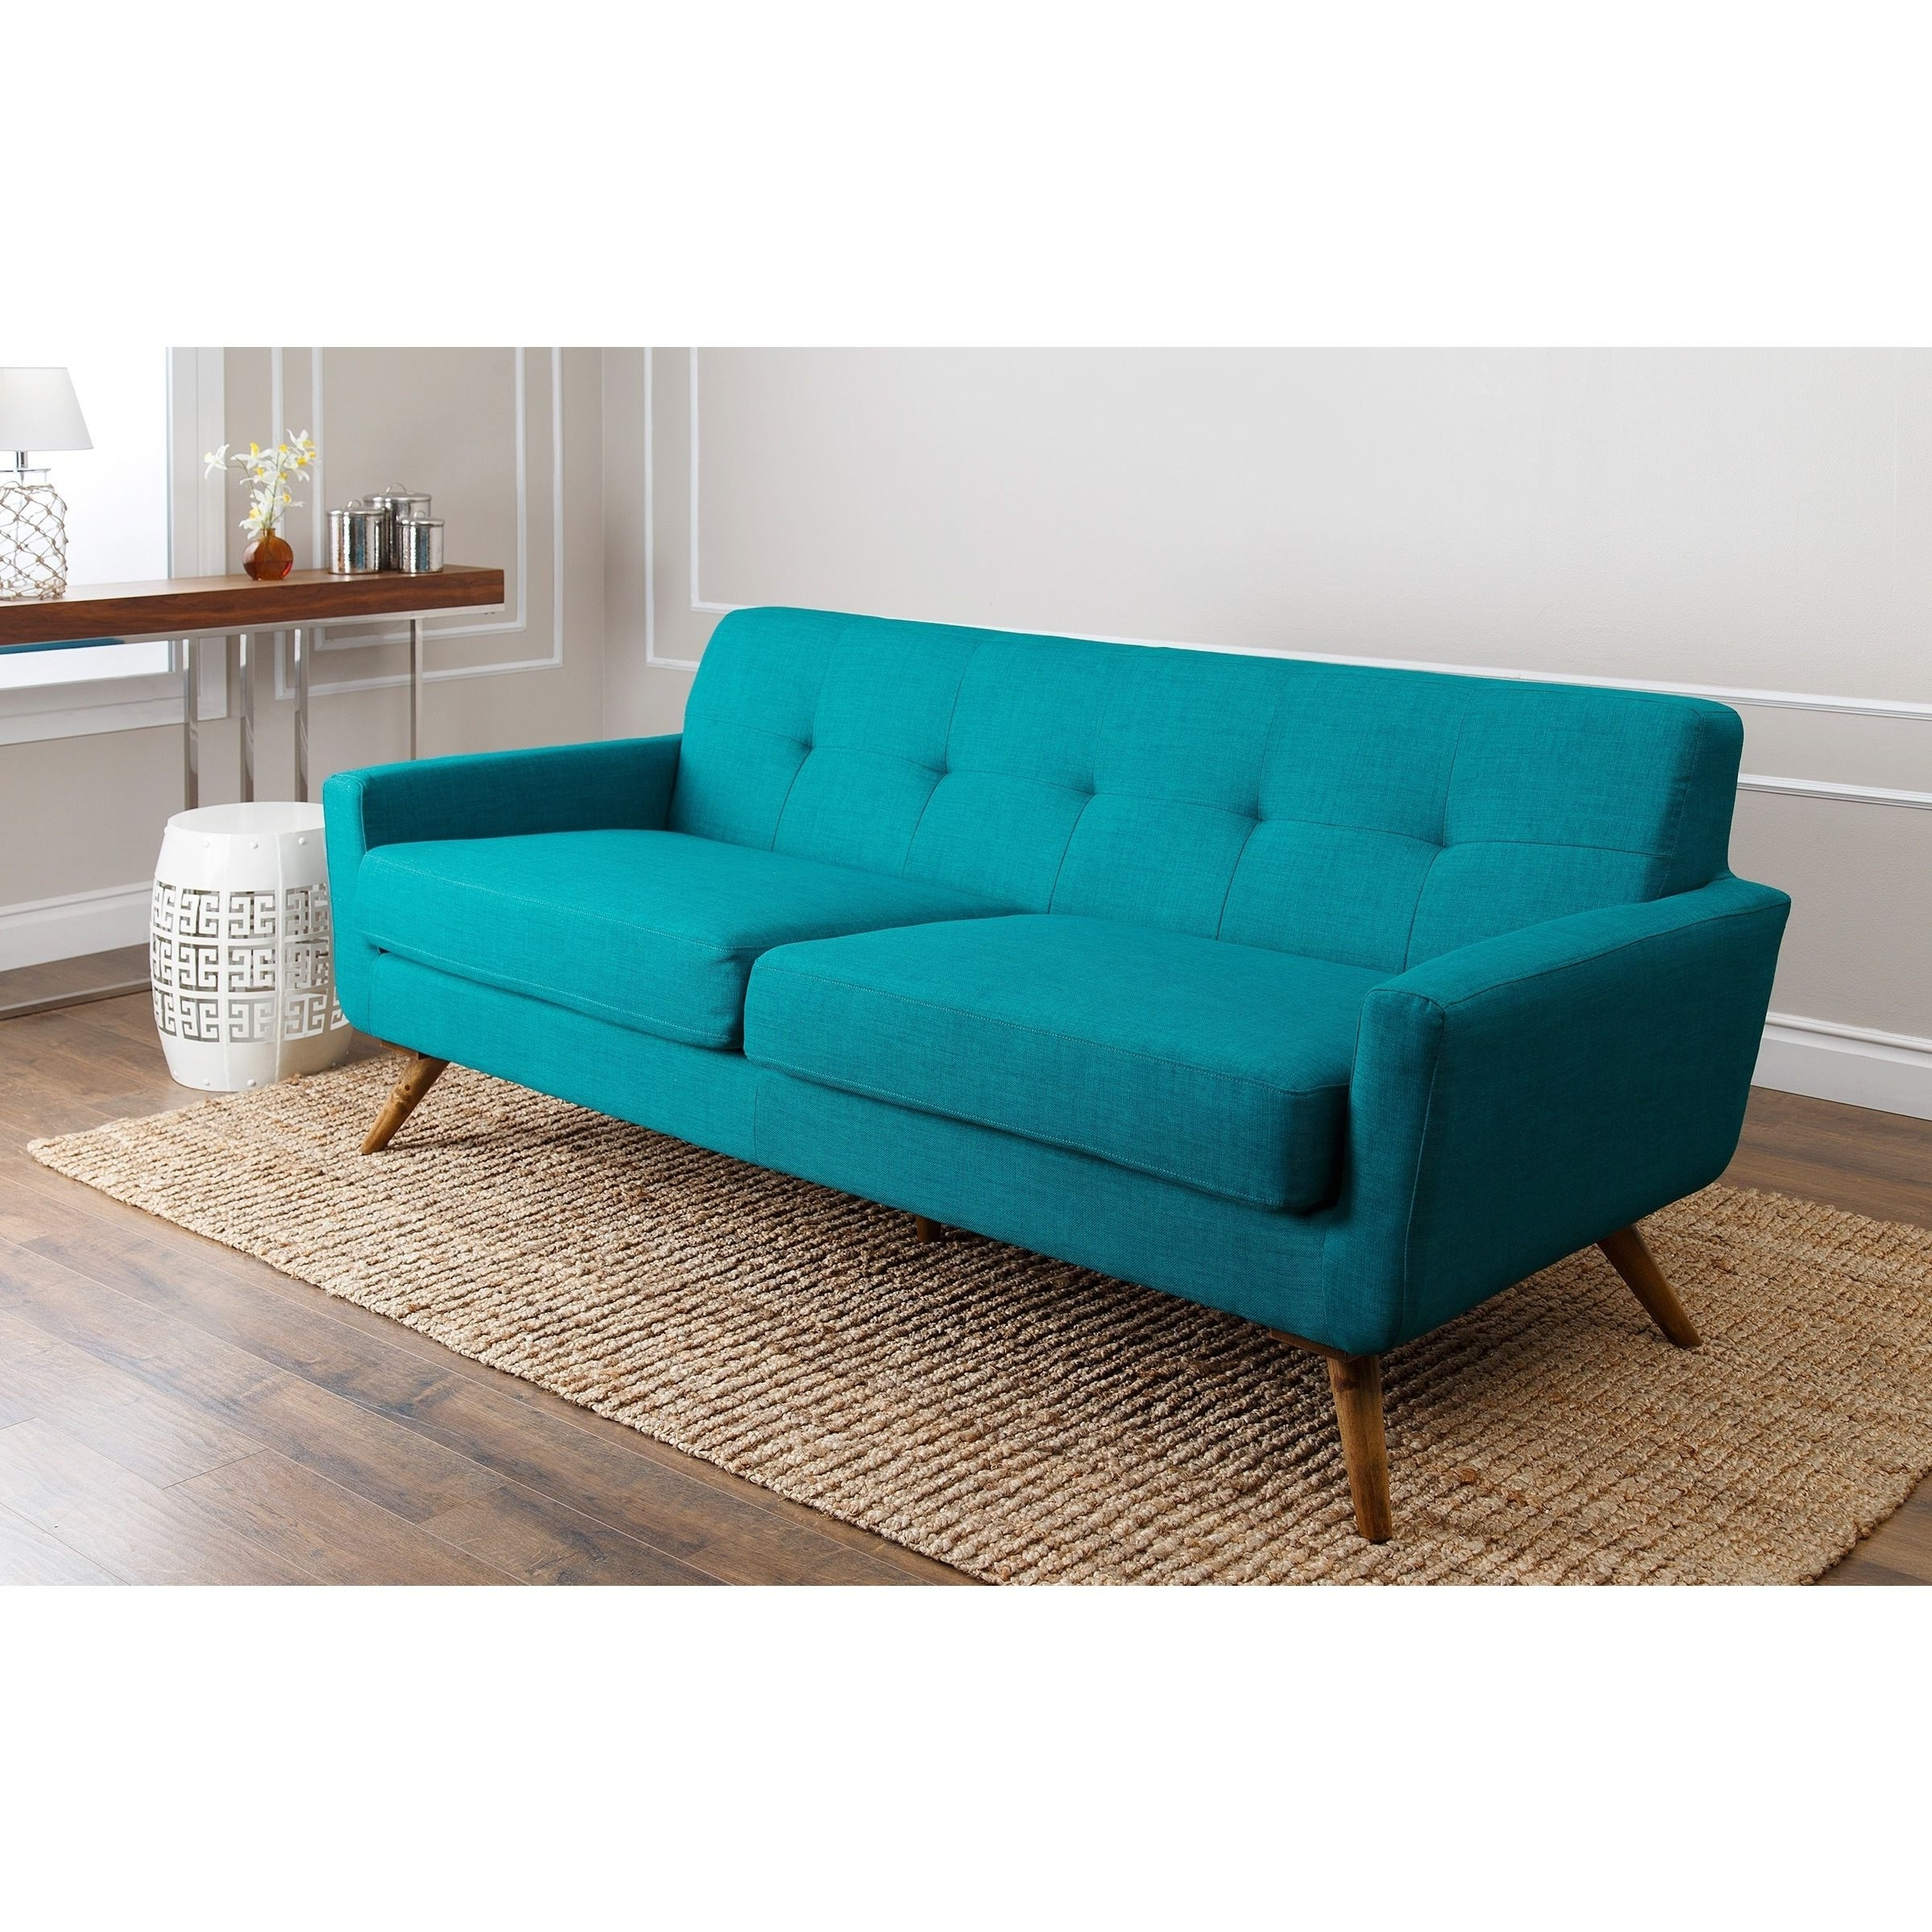 Aqua Sofas Regarding Famous Teal Tufted Sofa (View 3 of 20)